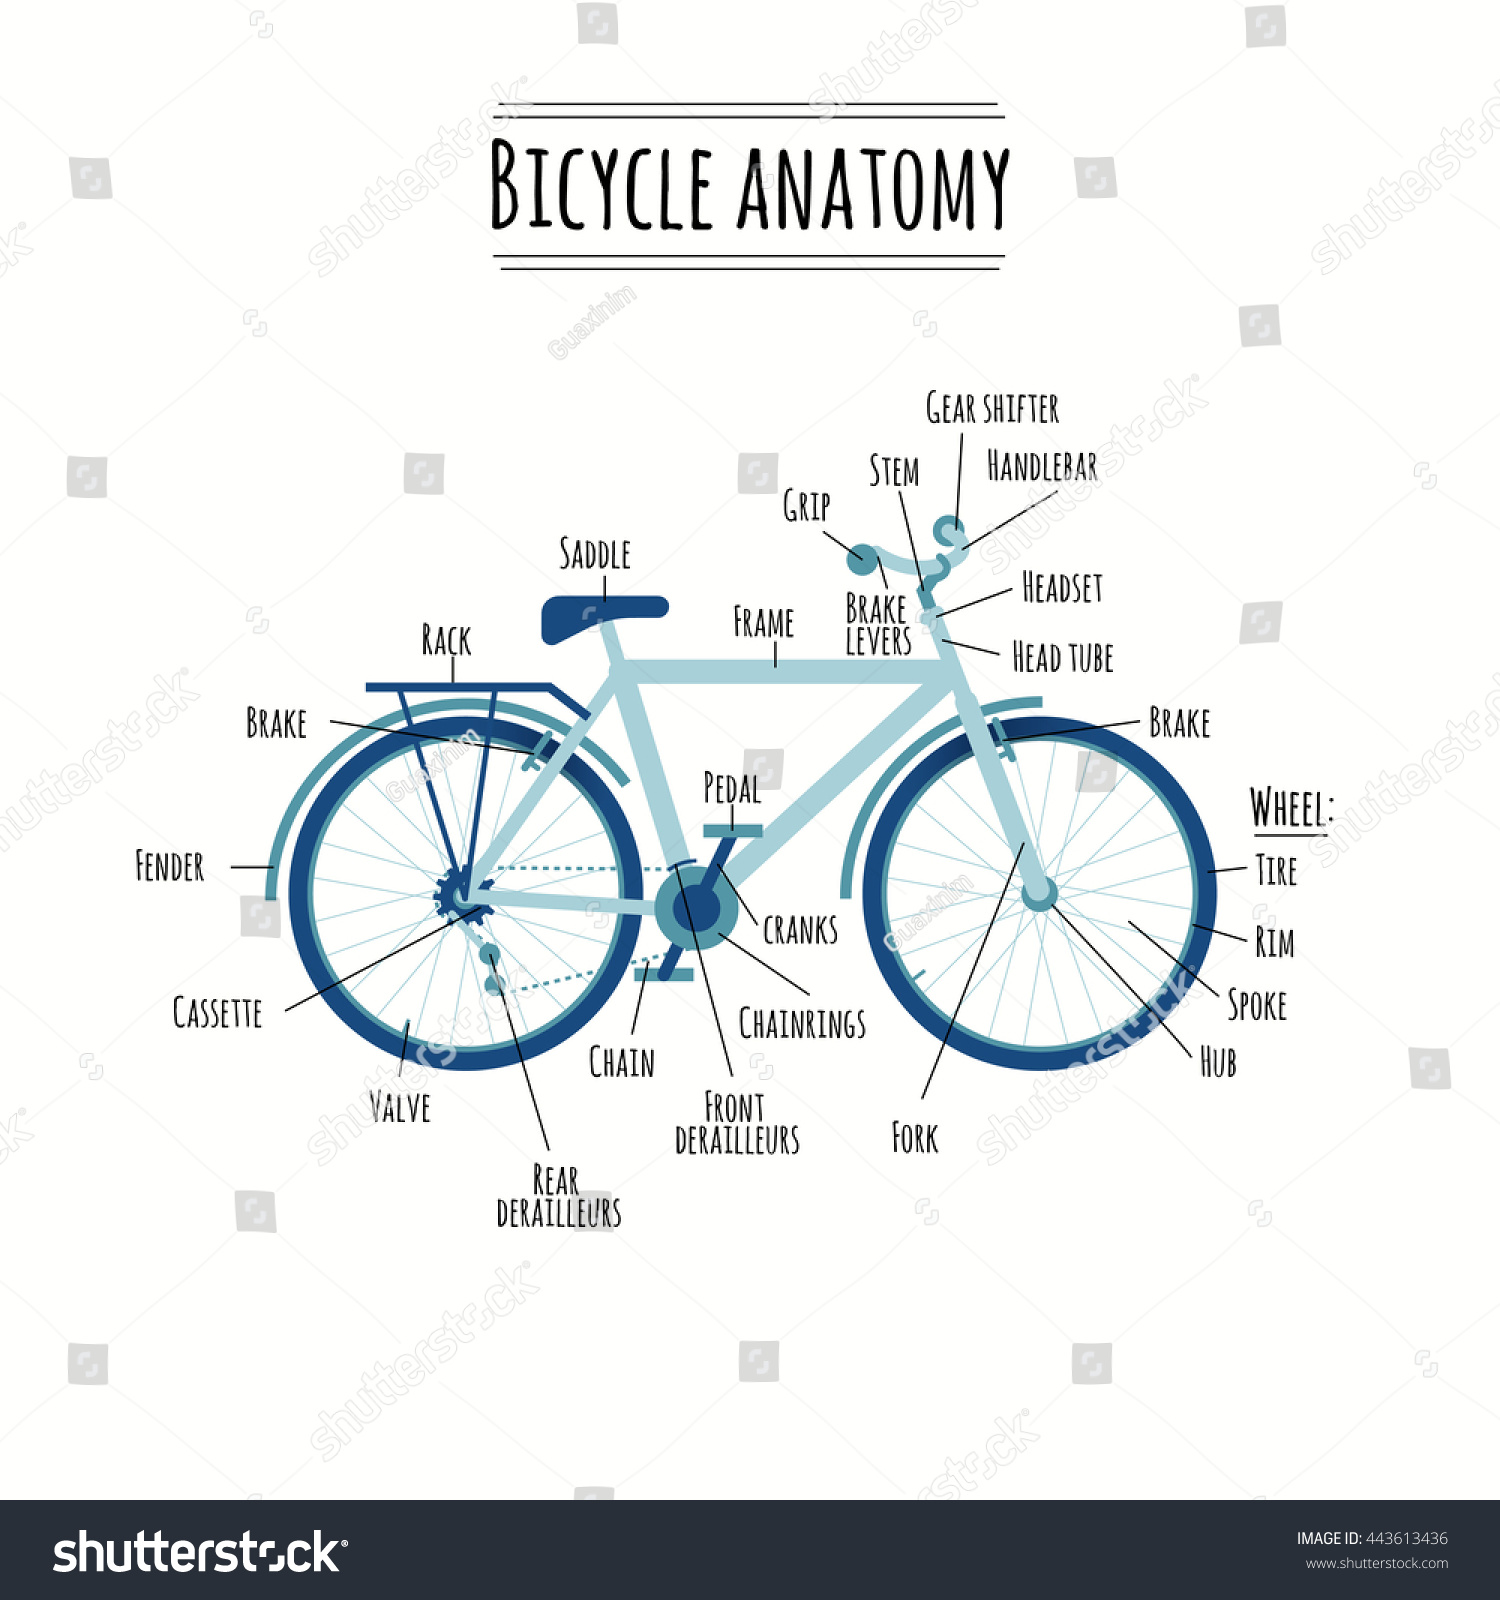 Bicycle Anatomy Bike Components Bike Parts Stock Vector 443613436 ...